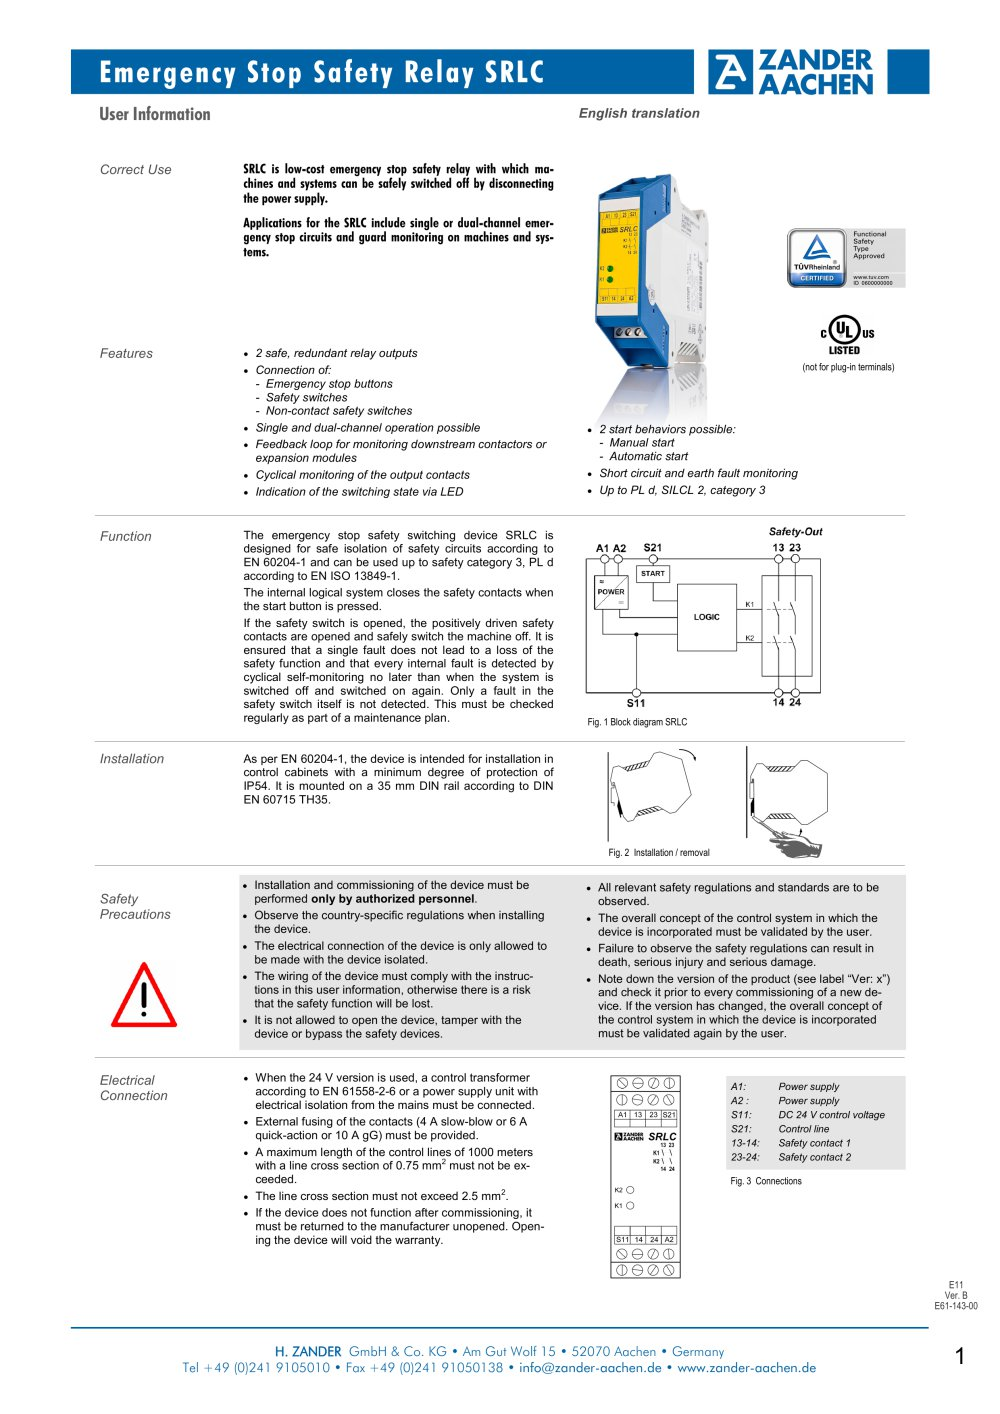 Safety Relay Srlc Zander Gmbh Co Kg Hermann Pdf Catalogs Circuit Working 1 4 Pages